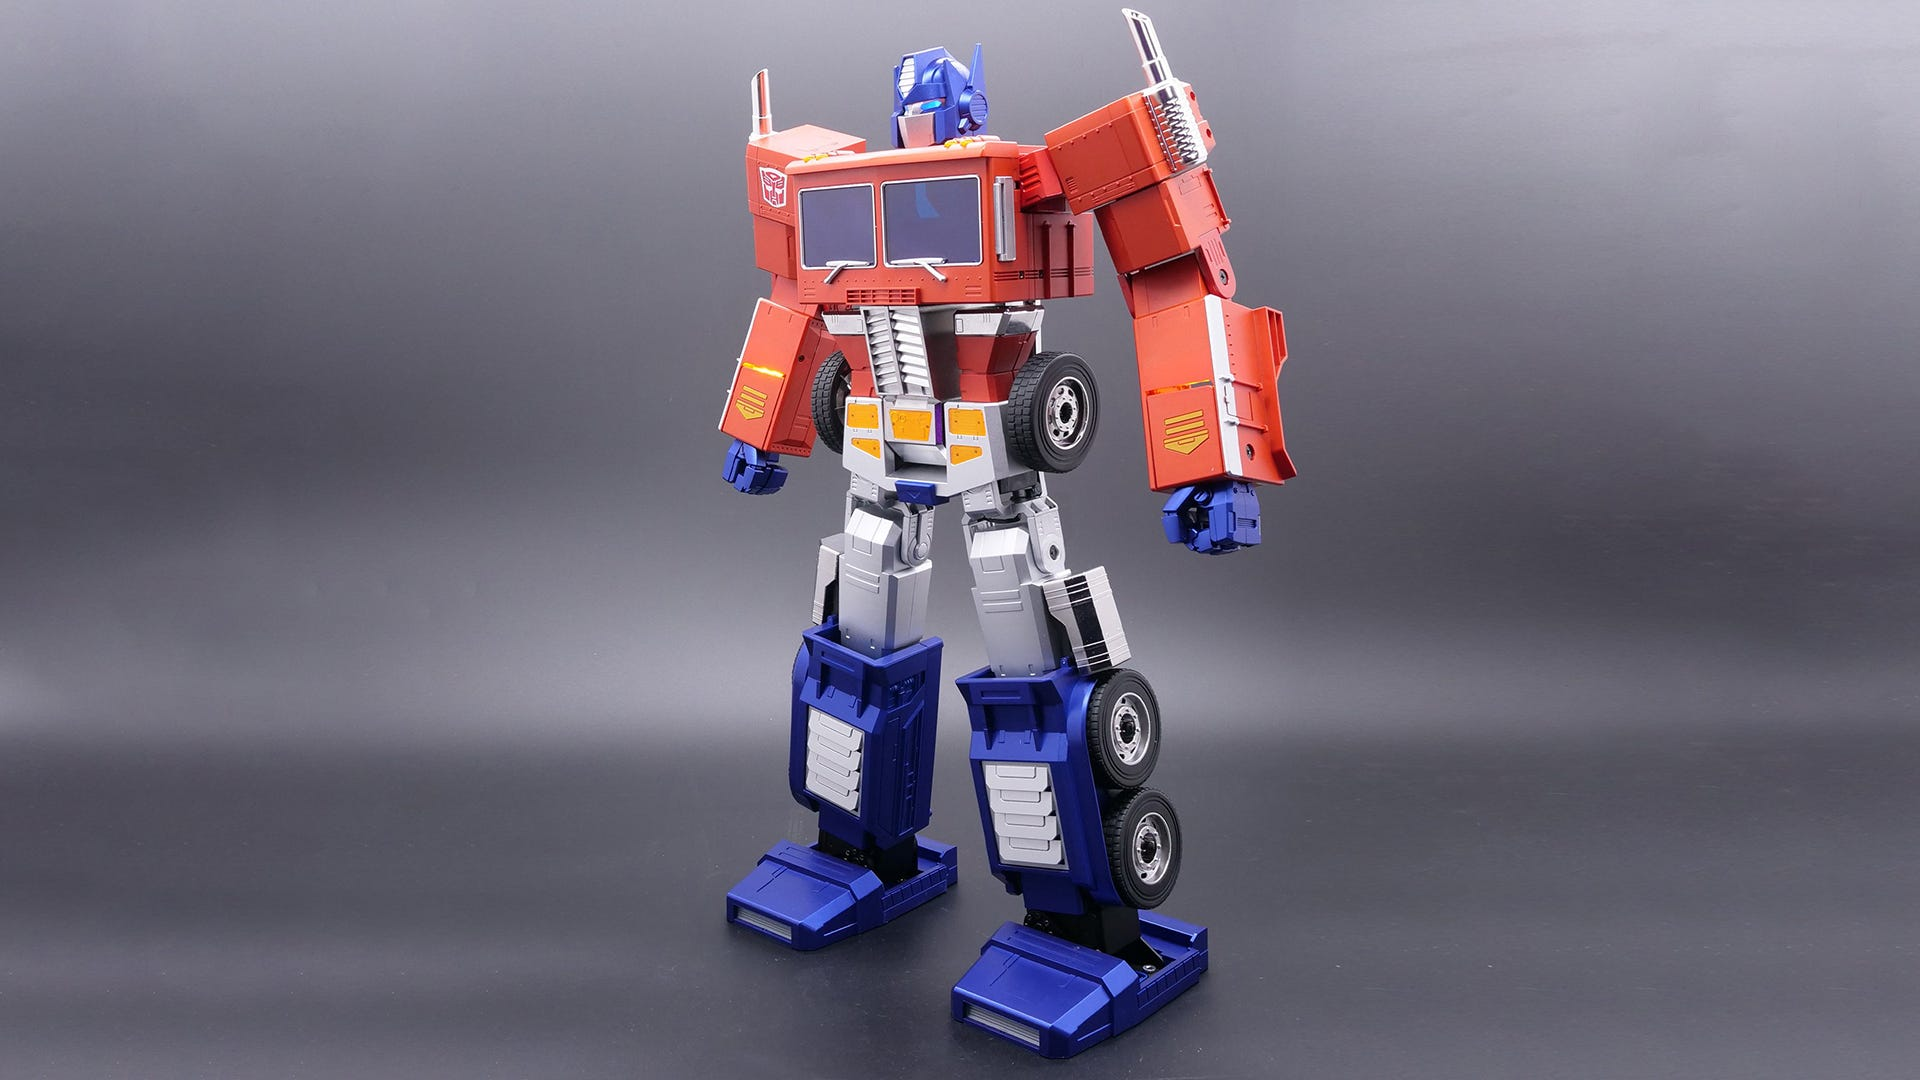 Hasbro's New $700 Optimus Prime Transforms All By Himself thumbnail